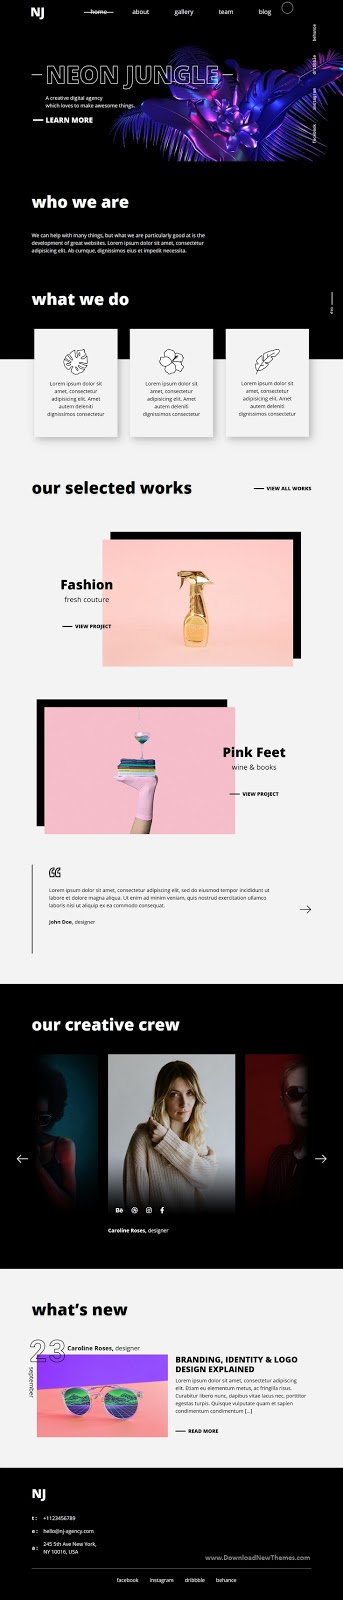 Neon Jungle - Creative Agency Template